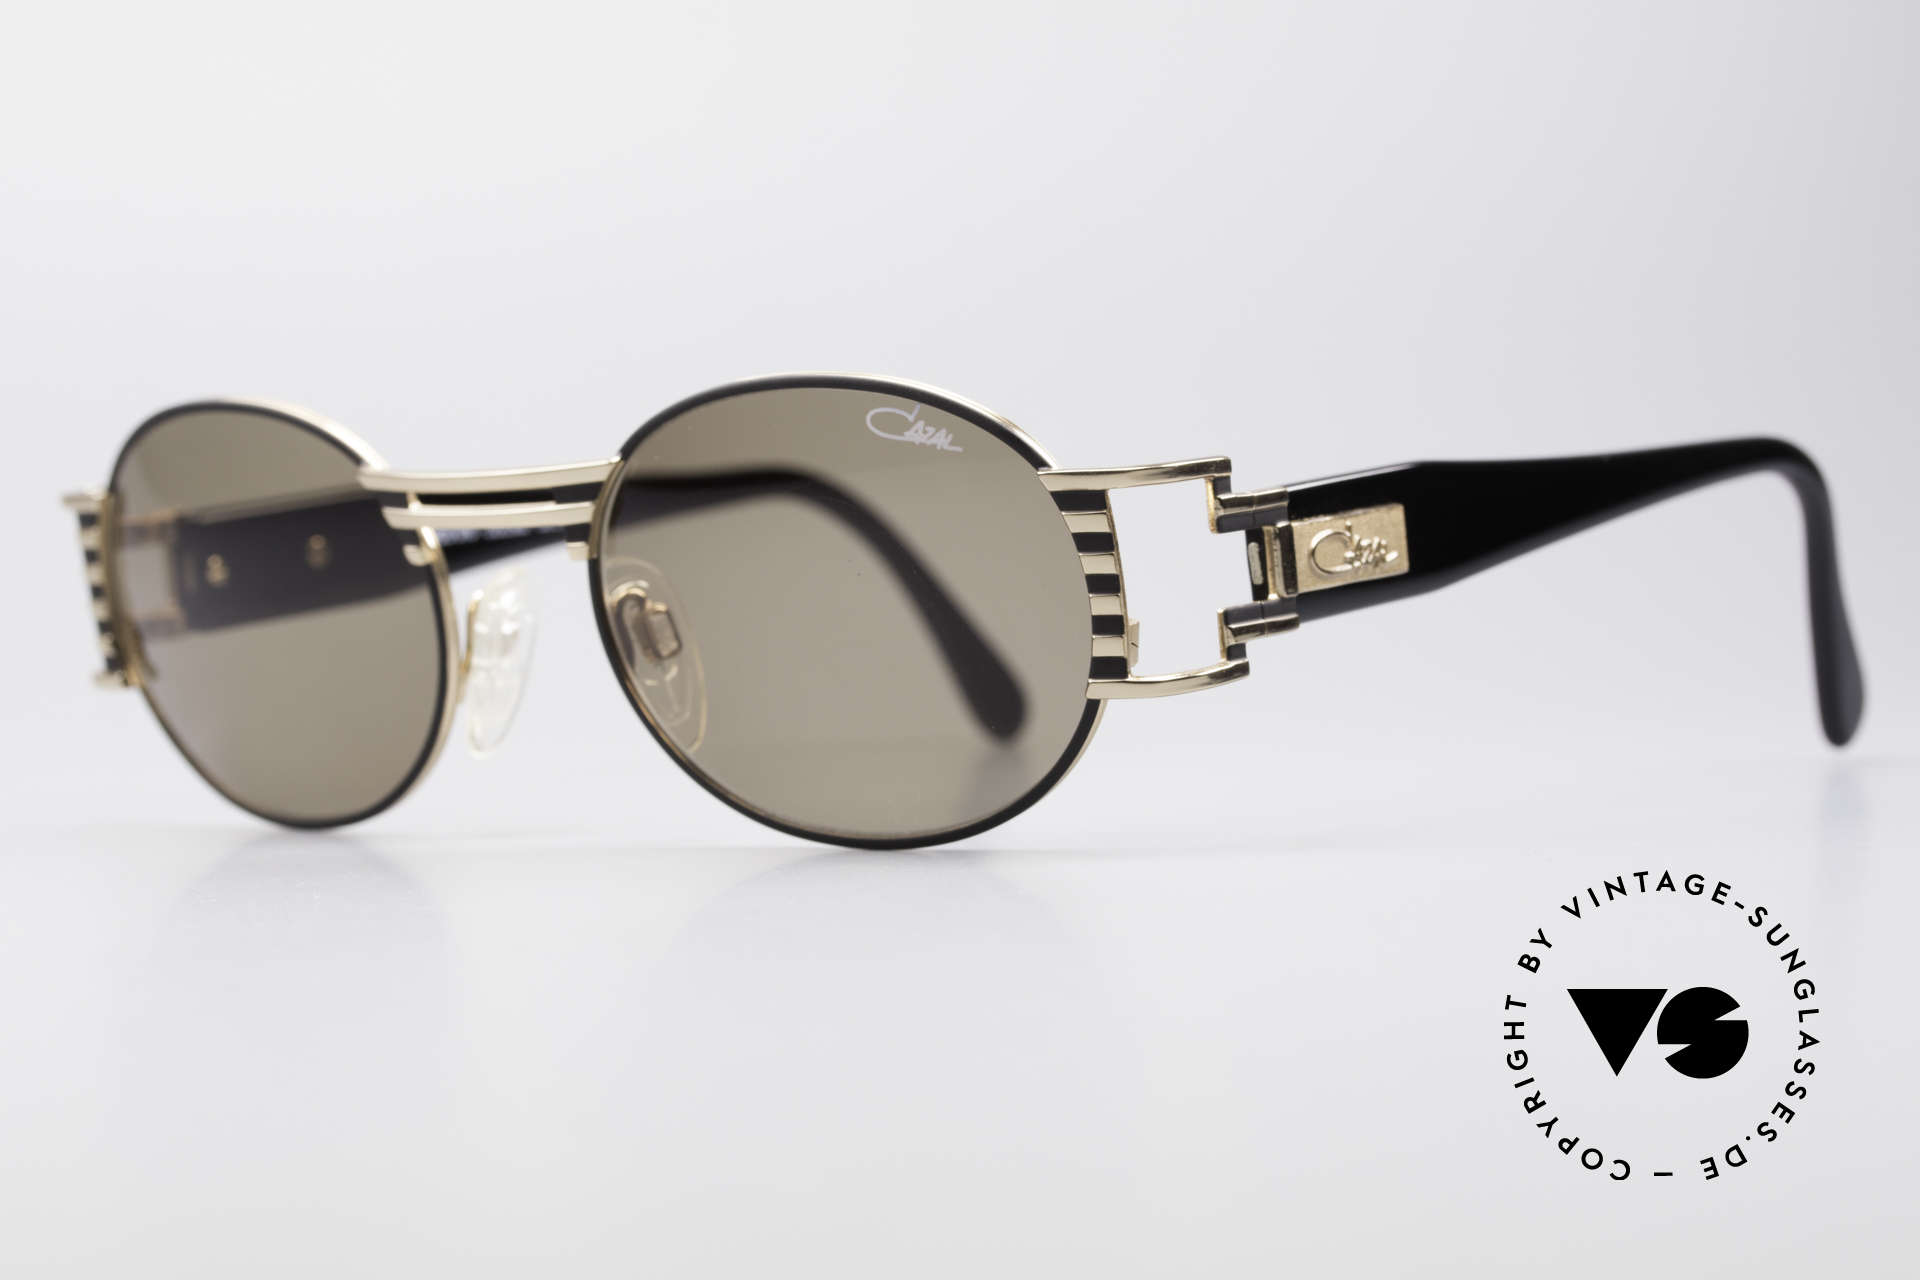 Cazal 976 90's Vintage Sunglasses Oval, best craftmanship and 1st class wearing comfort, Made for Men and Women